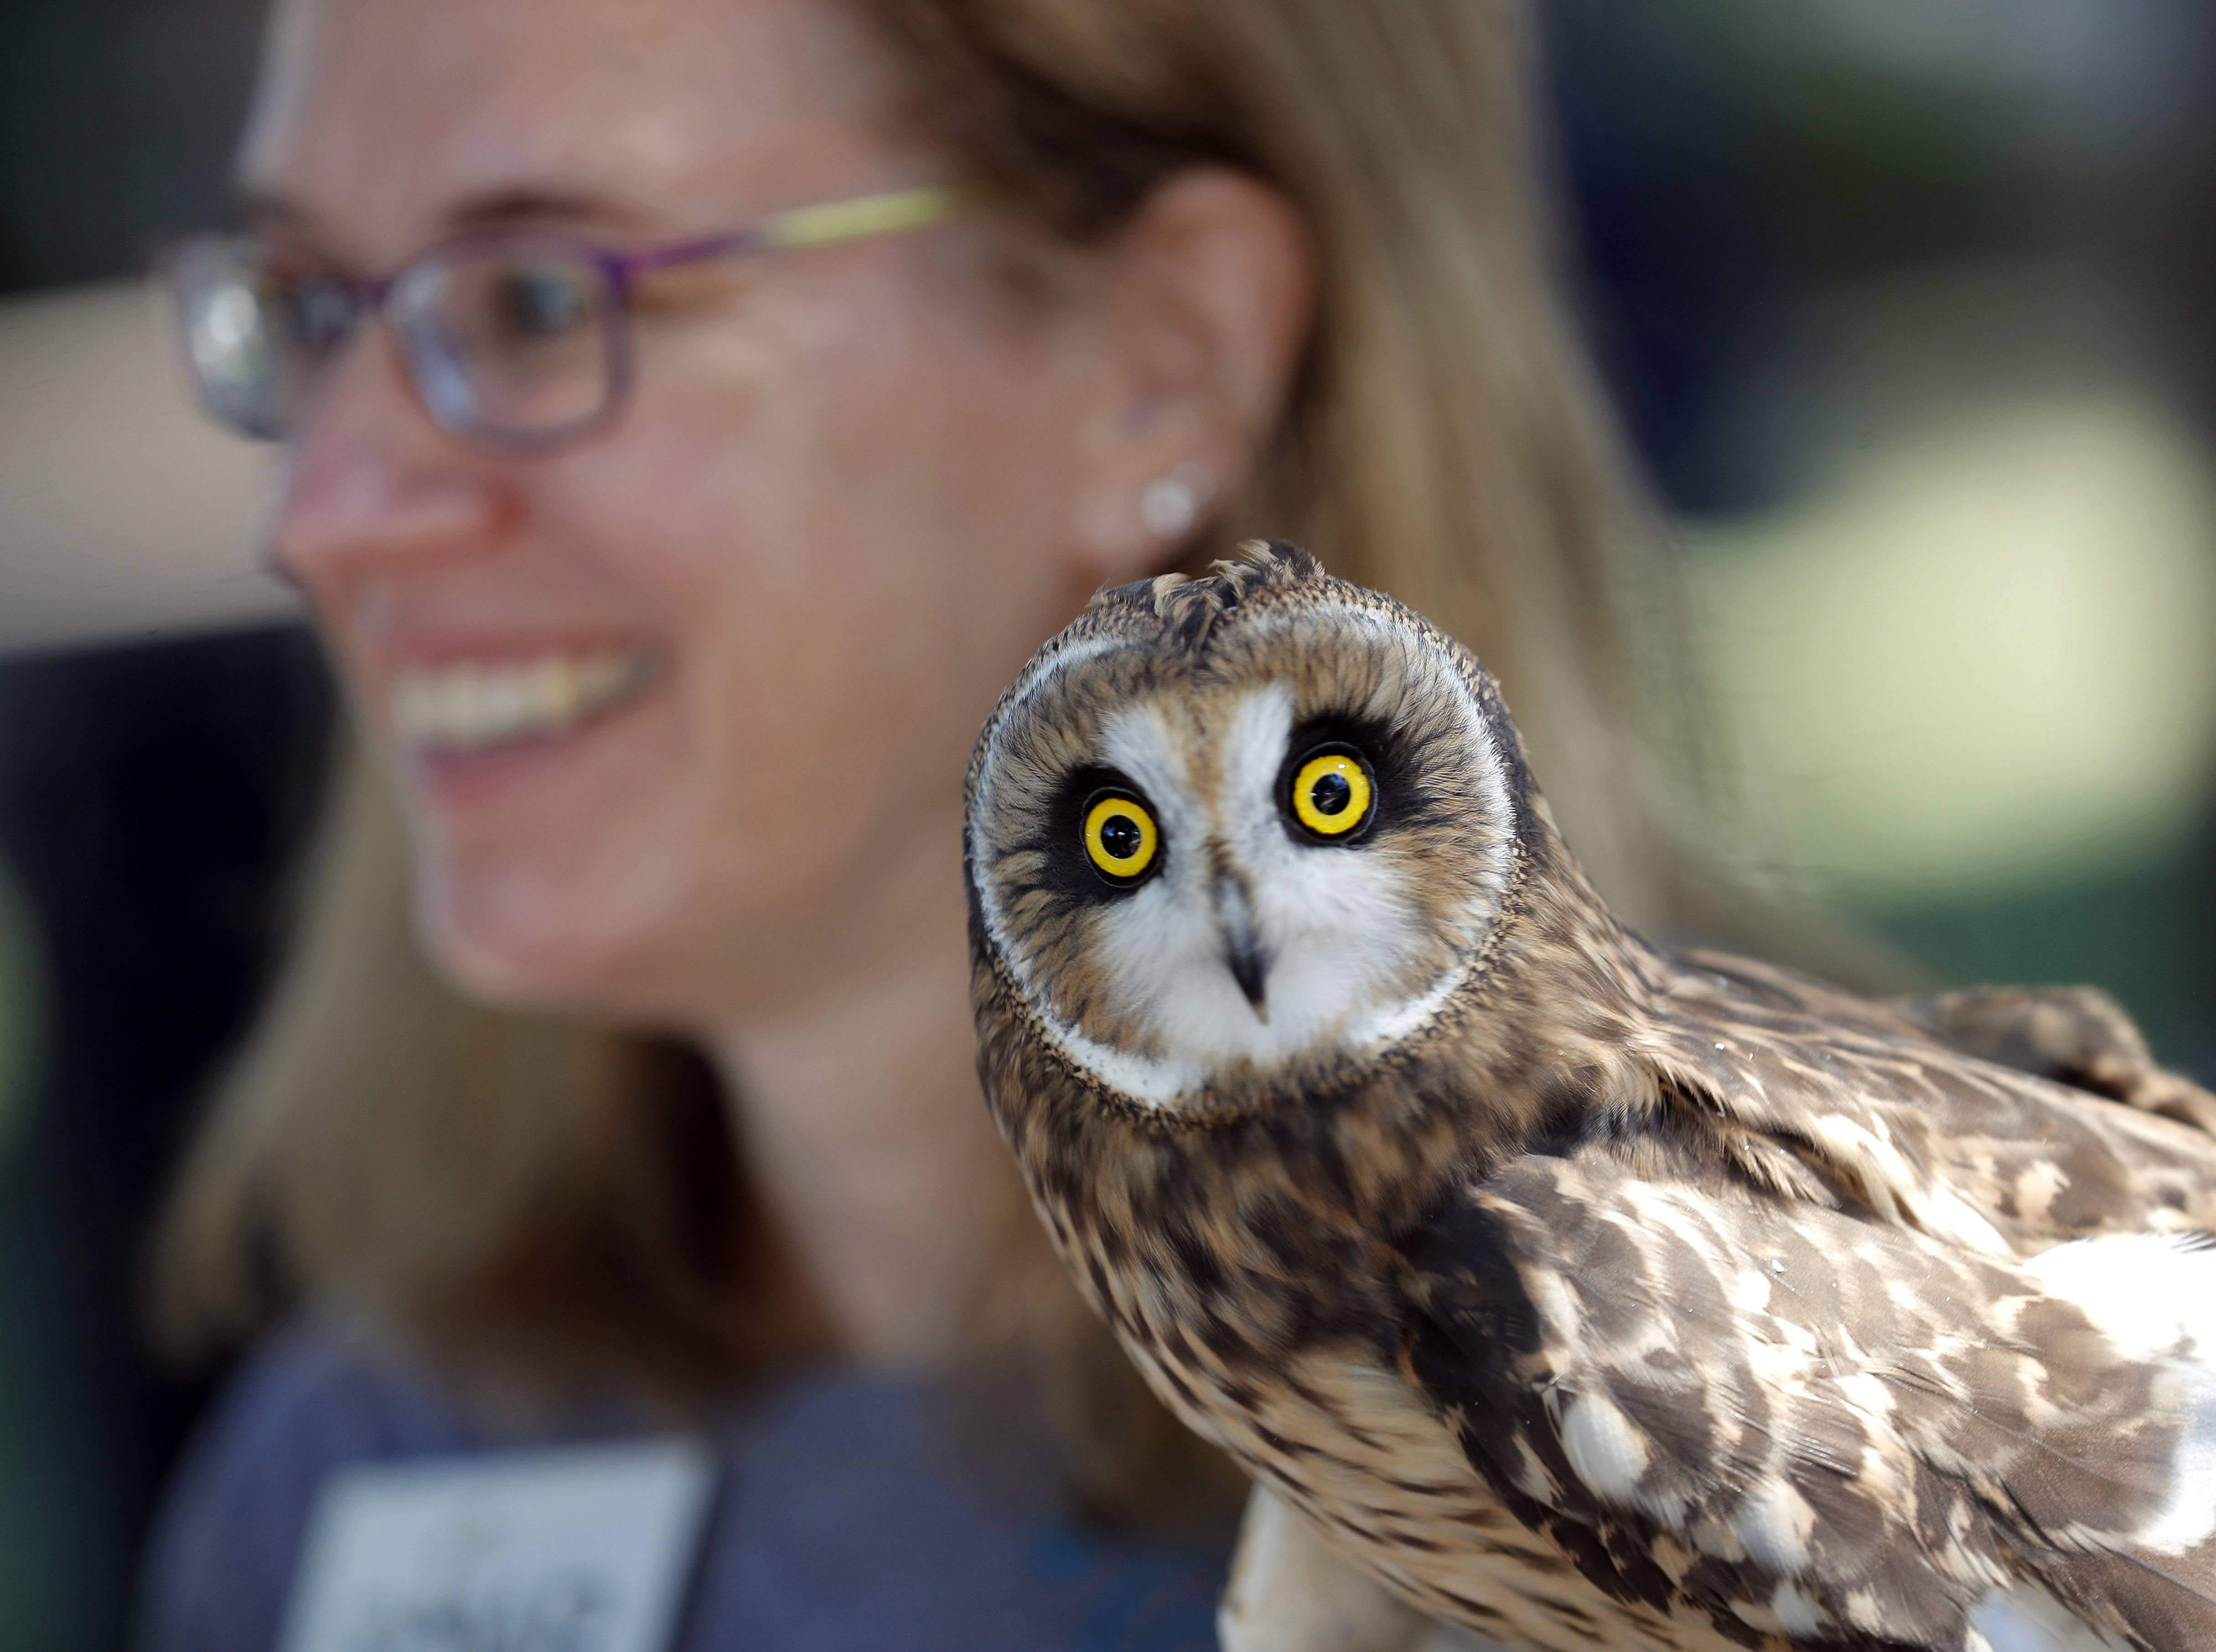 Marla Jedlicka, of S.O.A.R. (Save Our American Raptors) holds a host eared owl during the 24th annual Native American Harvest Pow Wow at Naper Settlement in Naperville Sunday, Sept. 23, 2018.